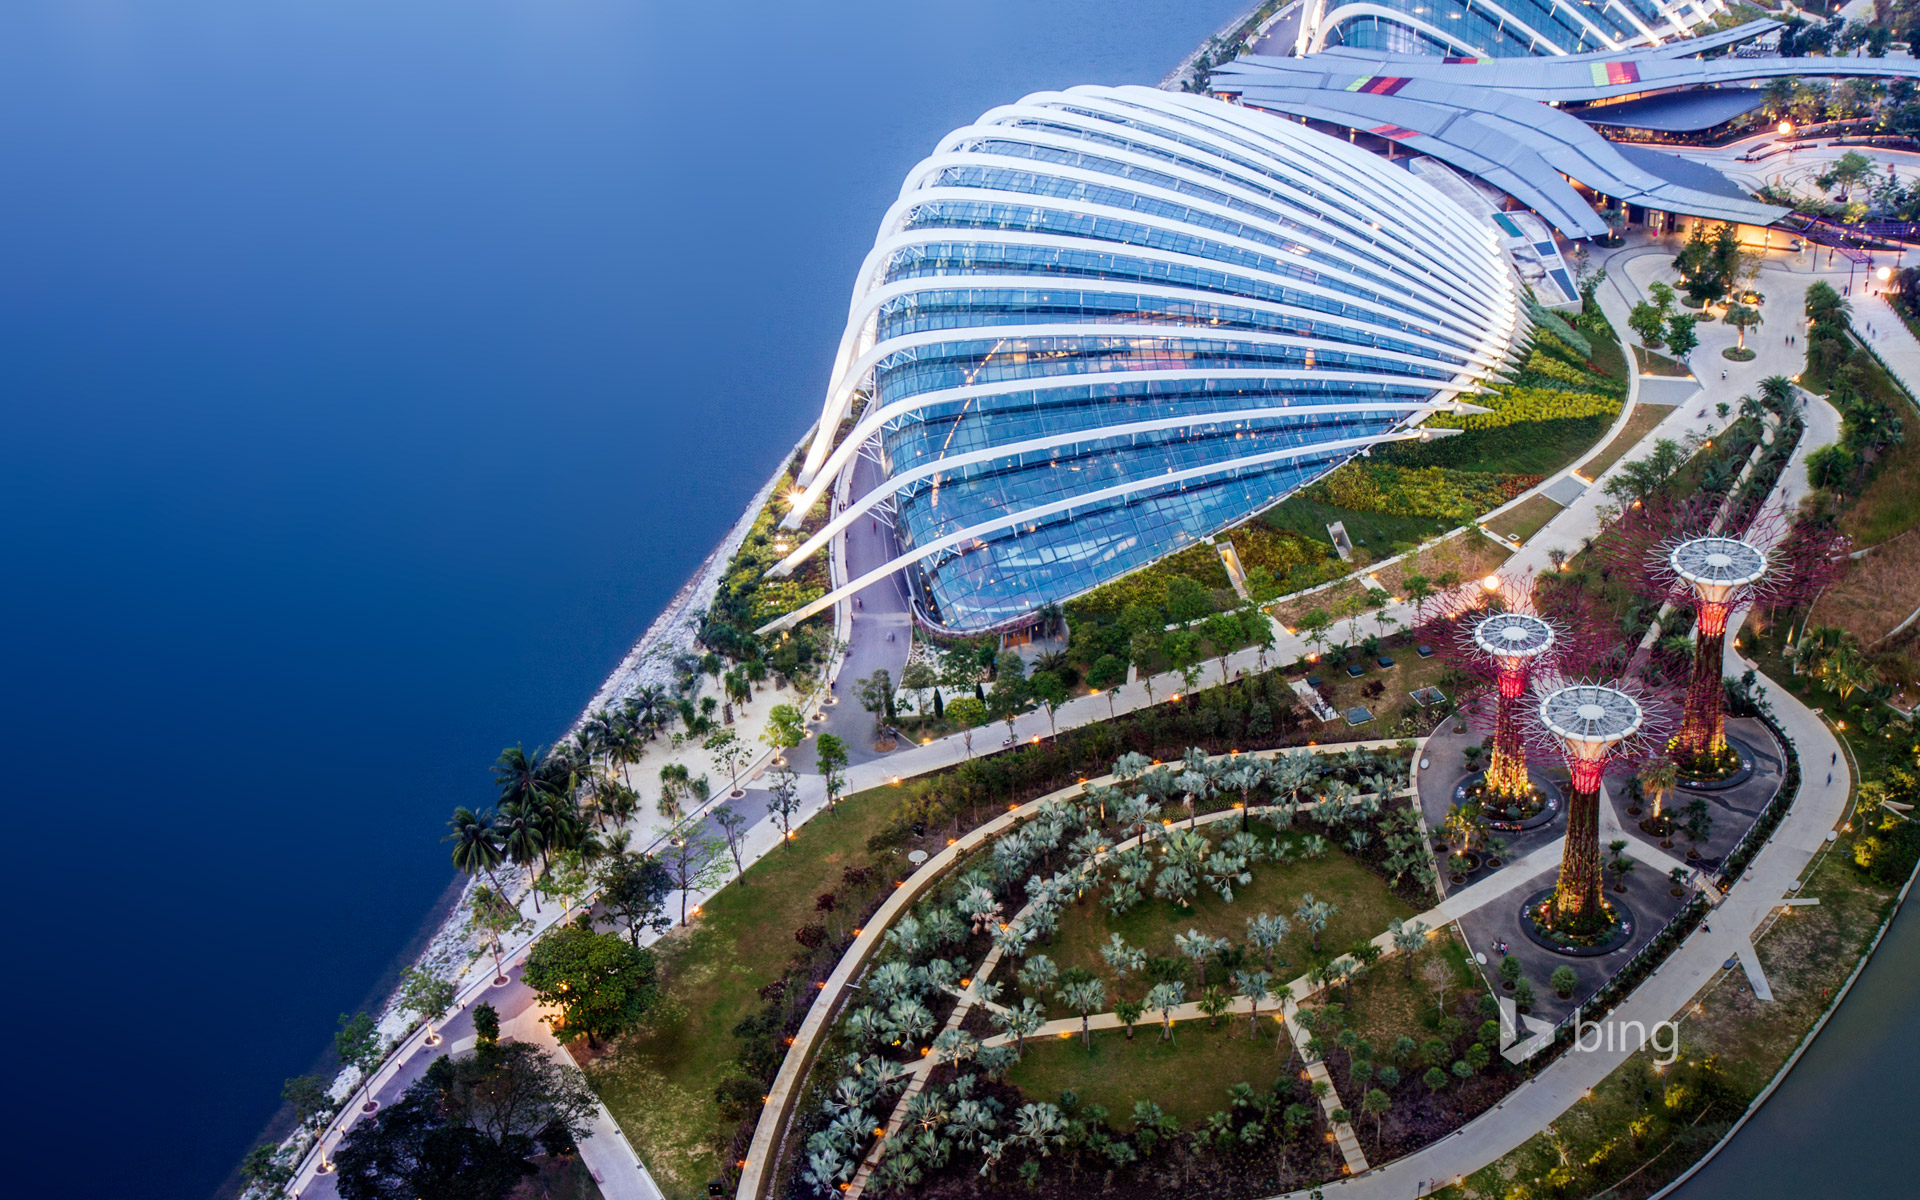 Singapore City Wallpapers Hd Wallpapers 101110